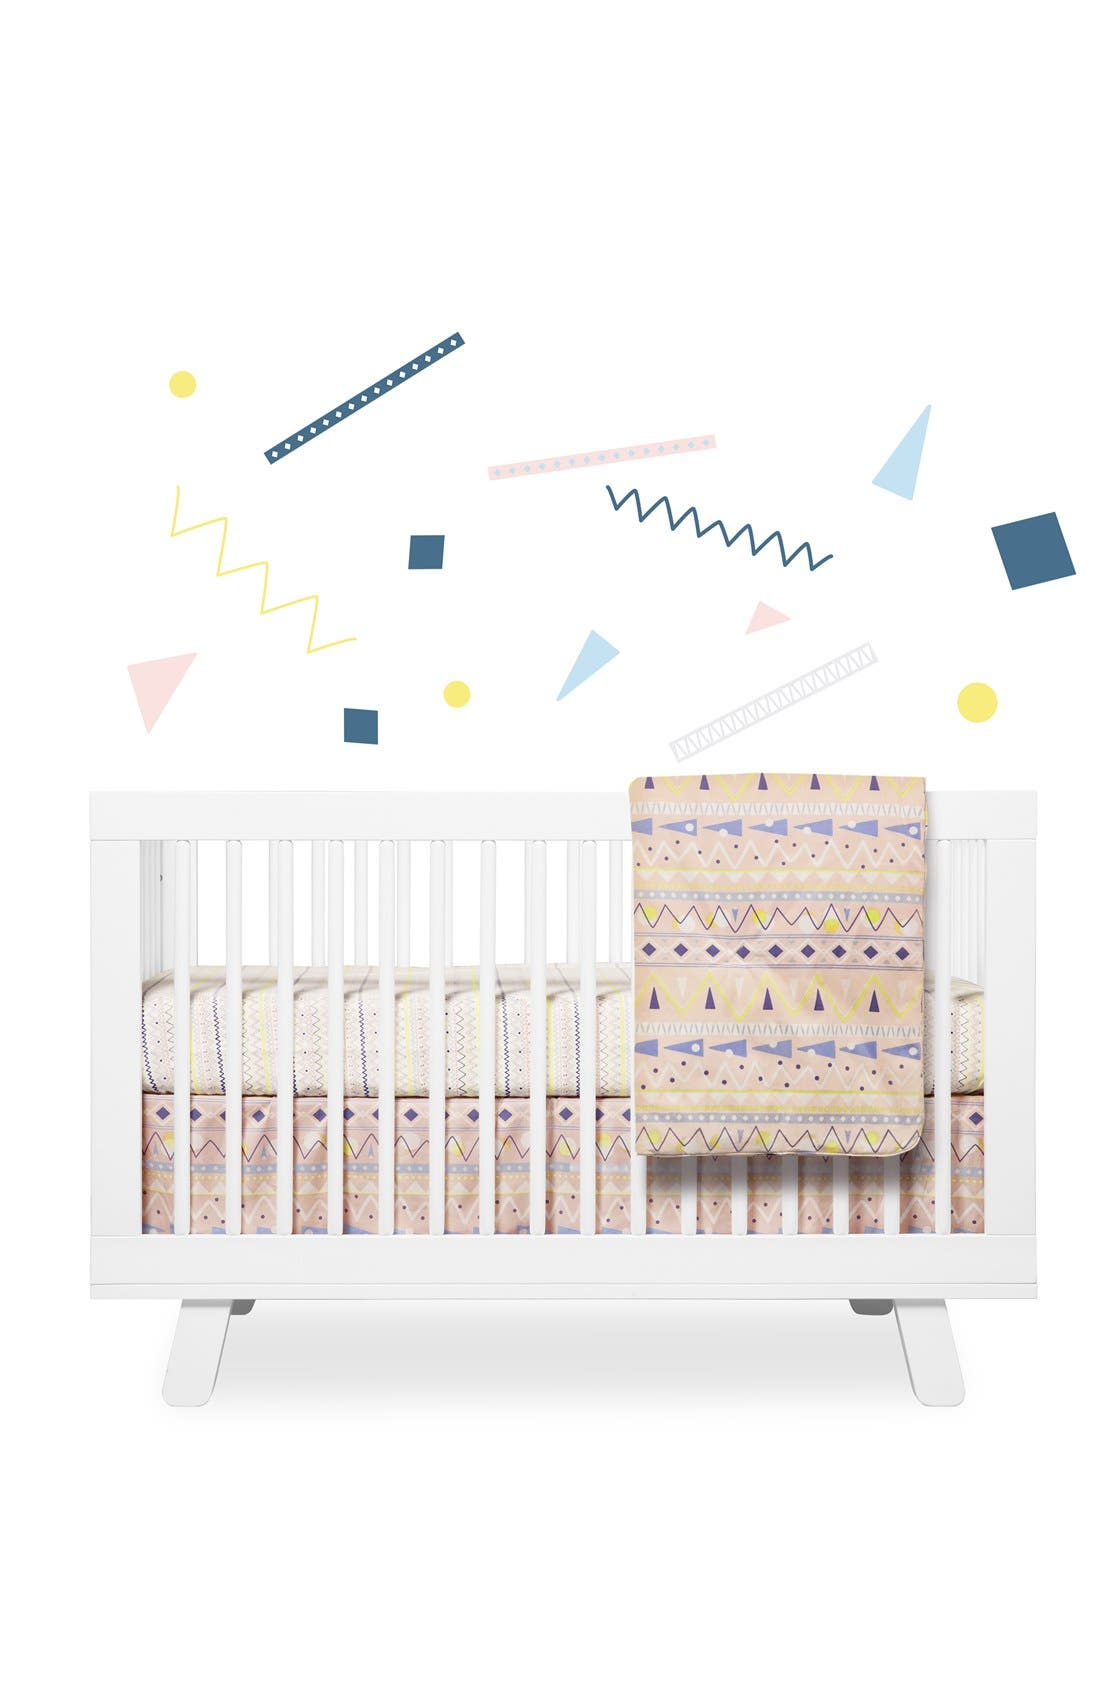 BABYLETTO, 'Desert' Crib Sheet, Crib Skirt, Changing Pad Cover, Blanket & Wall Decals, Main thumbnail 1, color, 900